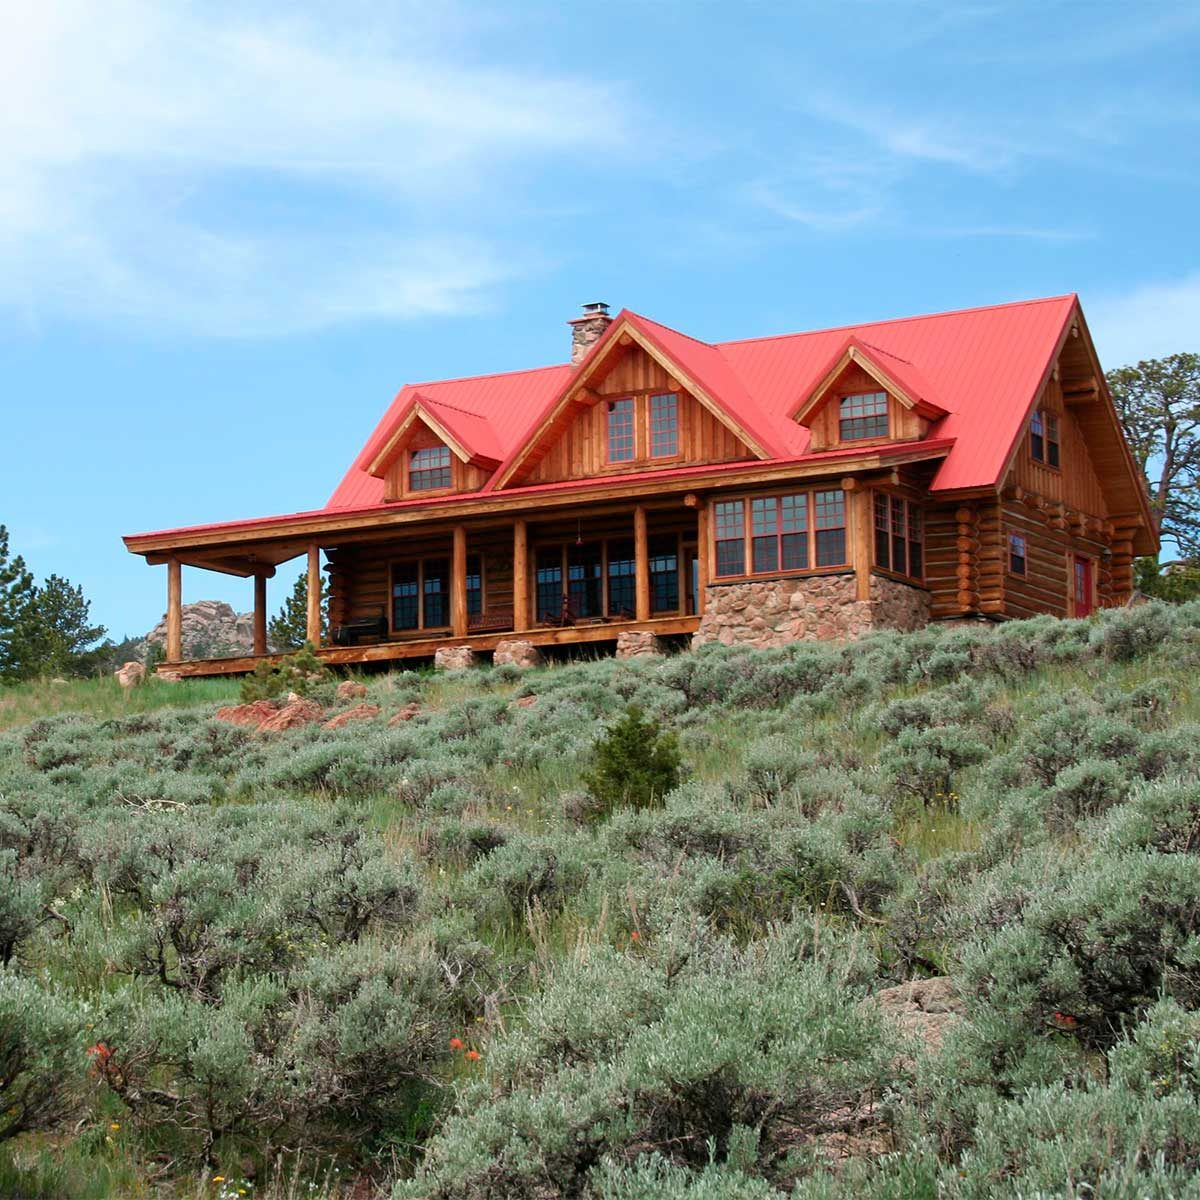 16 Amazing Cabins You Have To See To Believe The Family